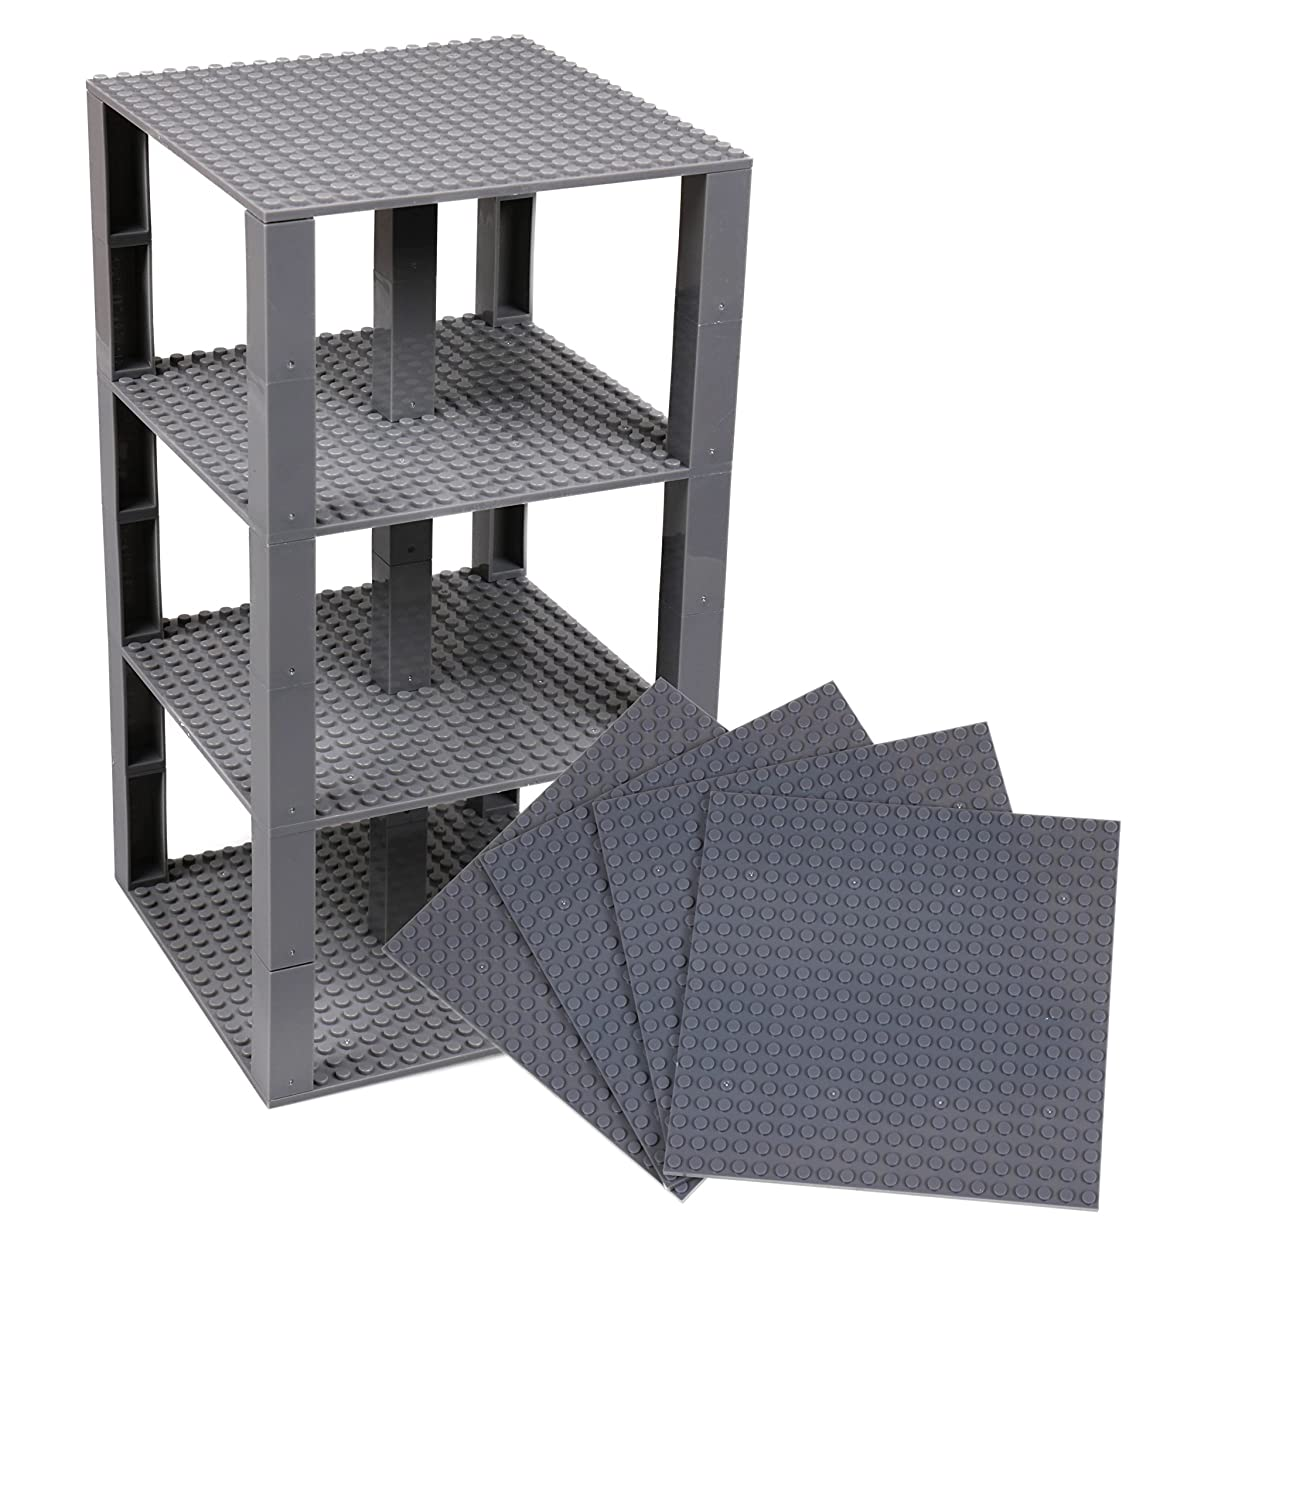 """Strictly Briks Classic Baseplates 6"""" x 6"""" Brik Tower 100% Compatible with All Major Brands   Building Bricks for Towers and More   4 Gray Stackable Base Plates & 30 Stackers"""